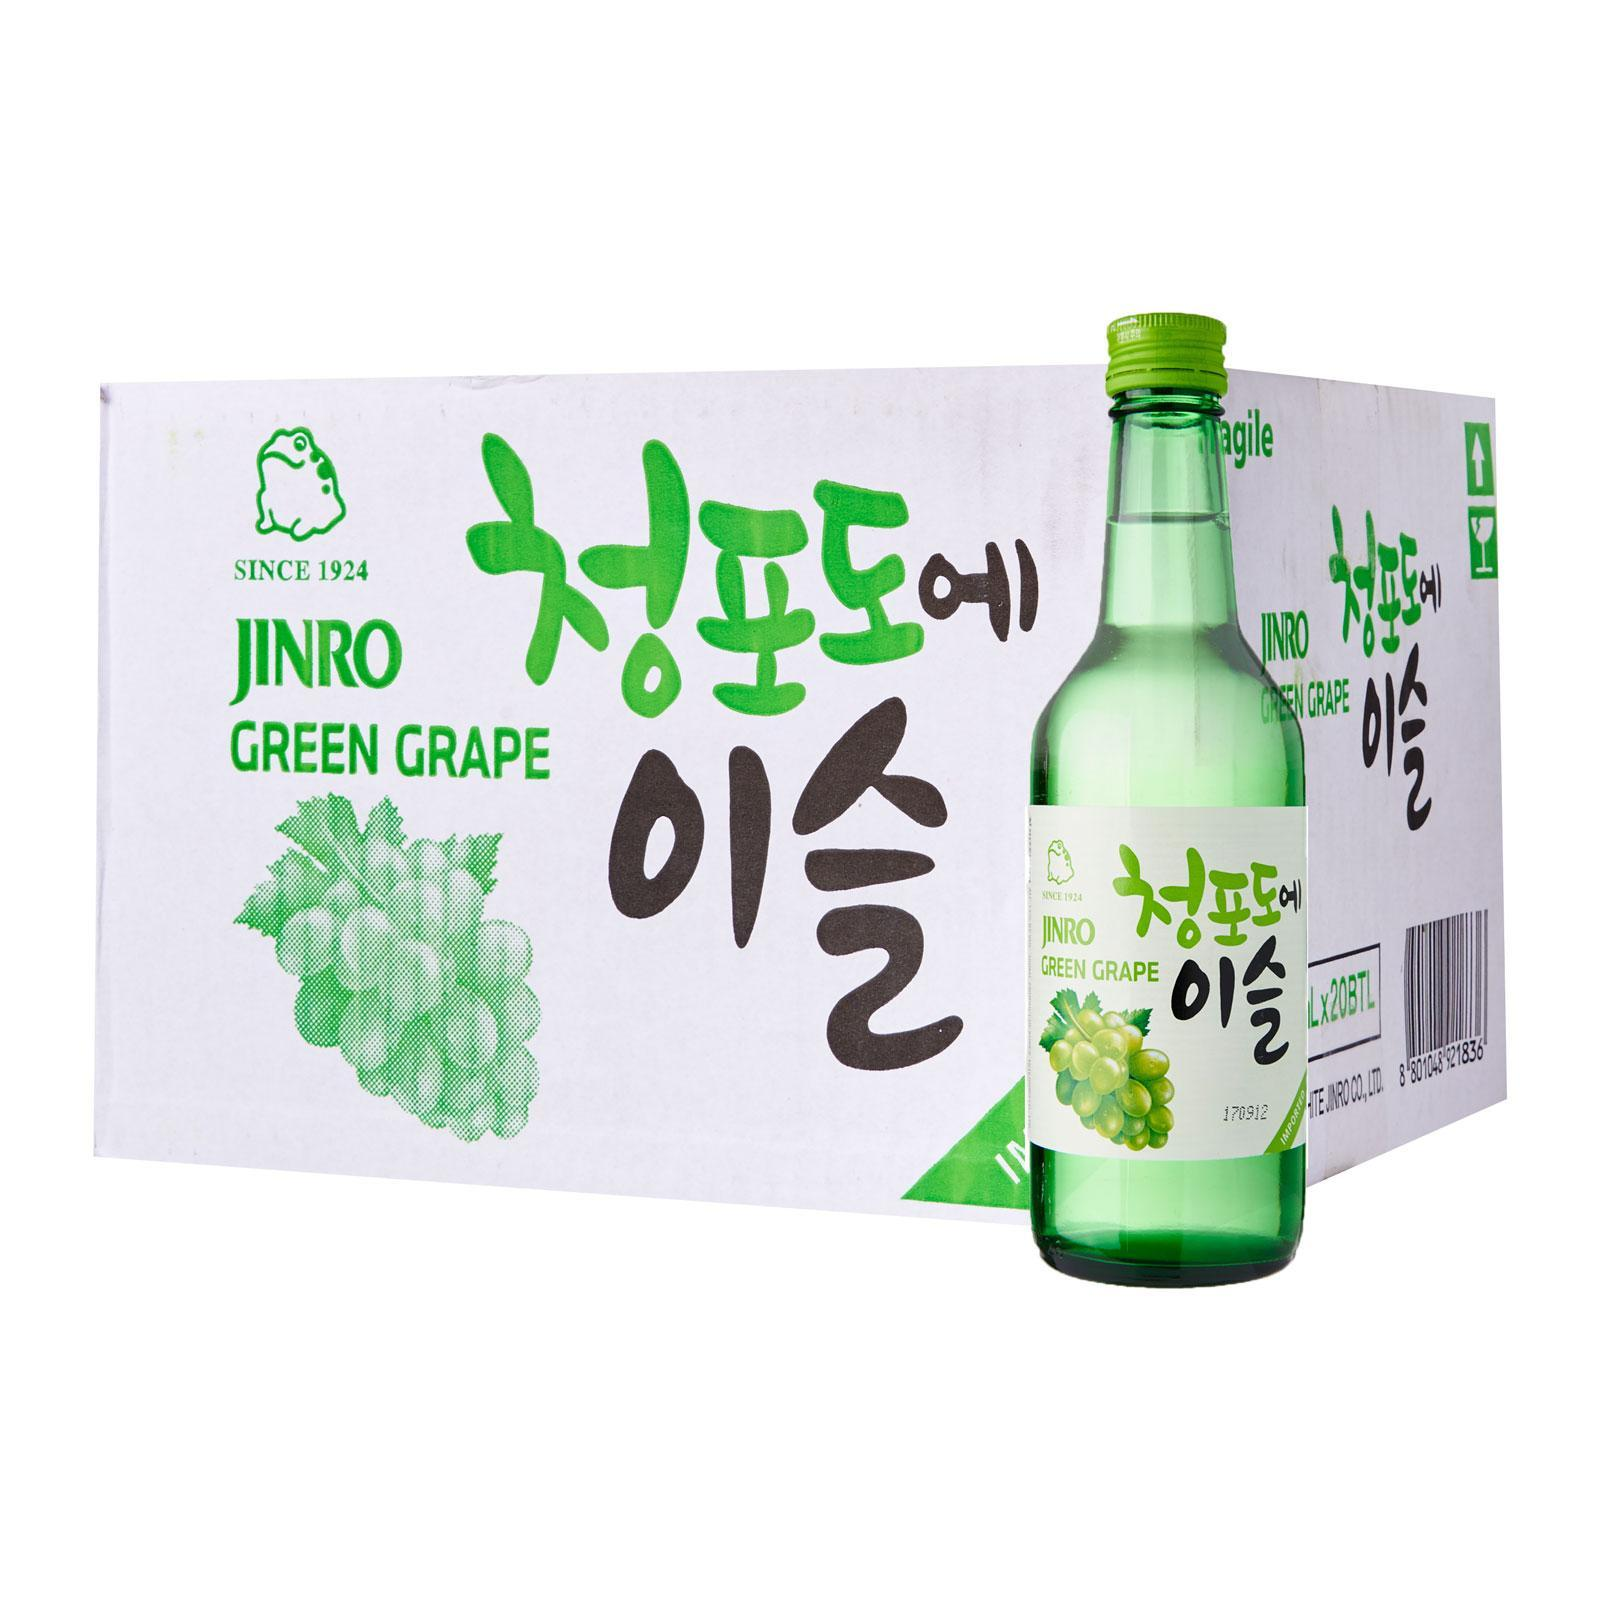 Jinro Green Grape Soju Carton (20 Bottles) By Geonbae.